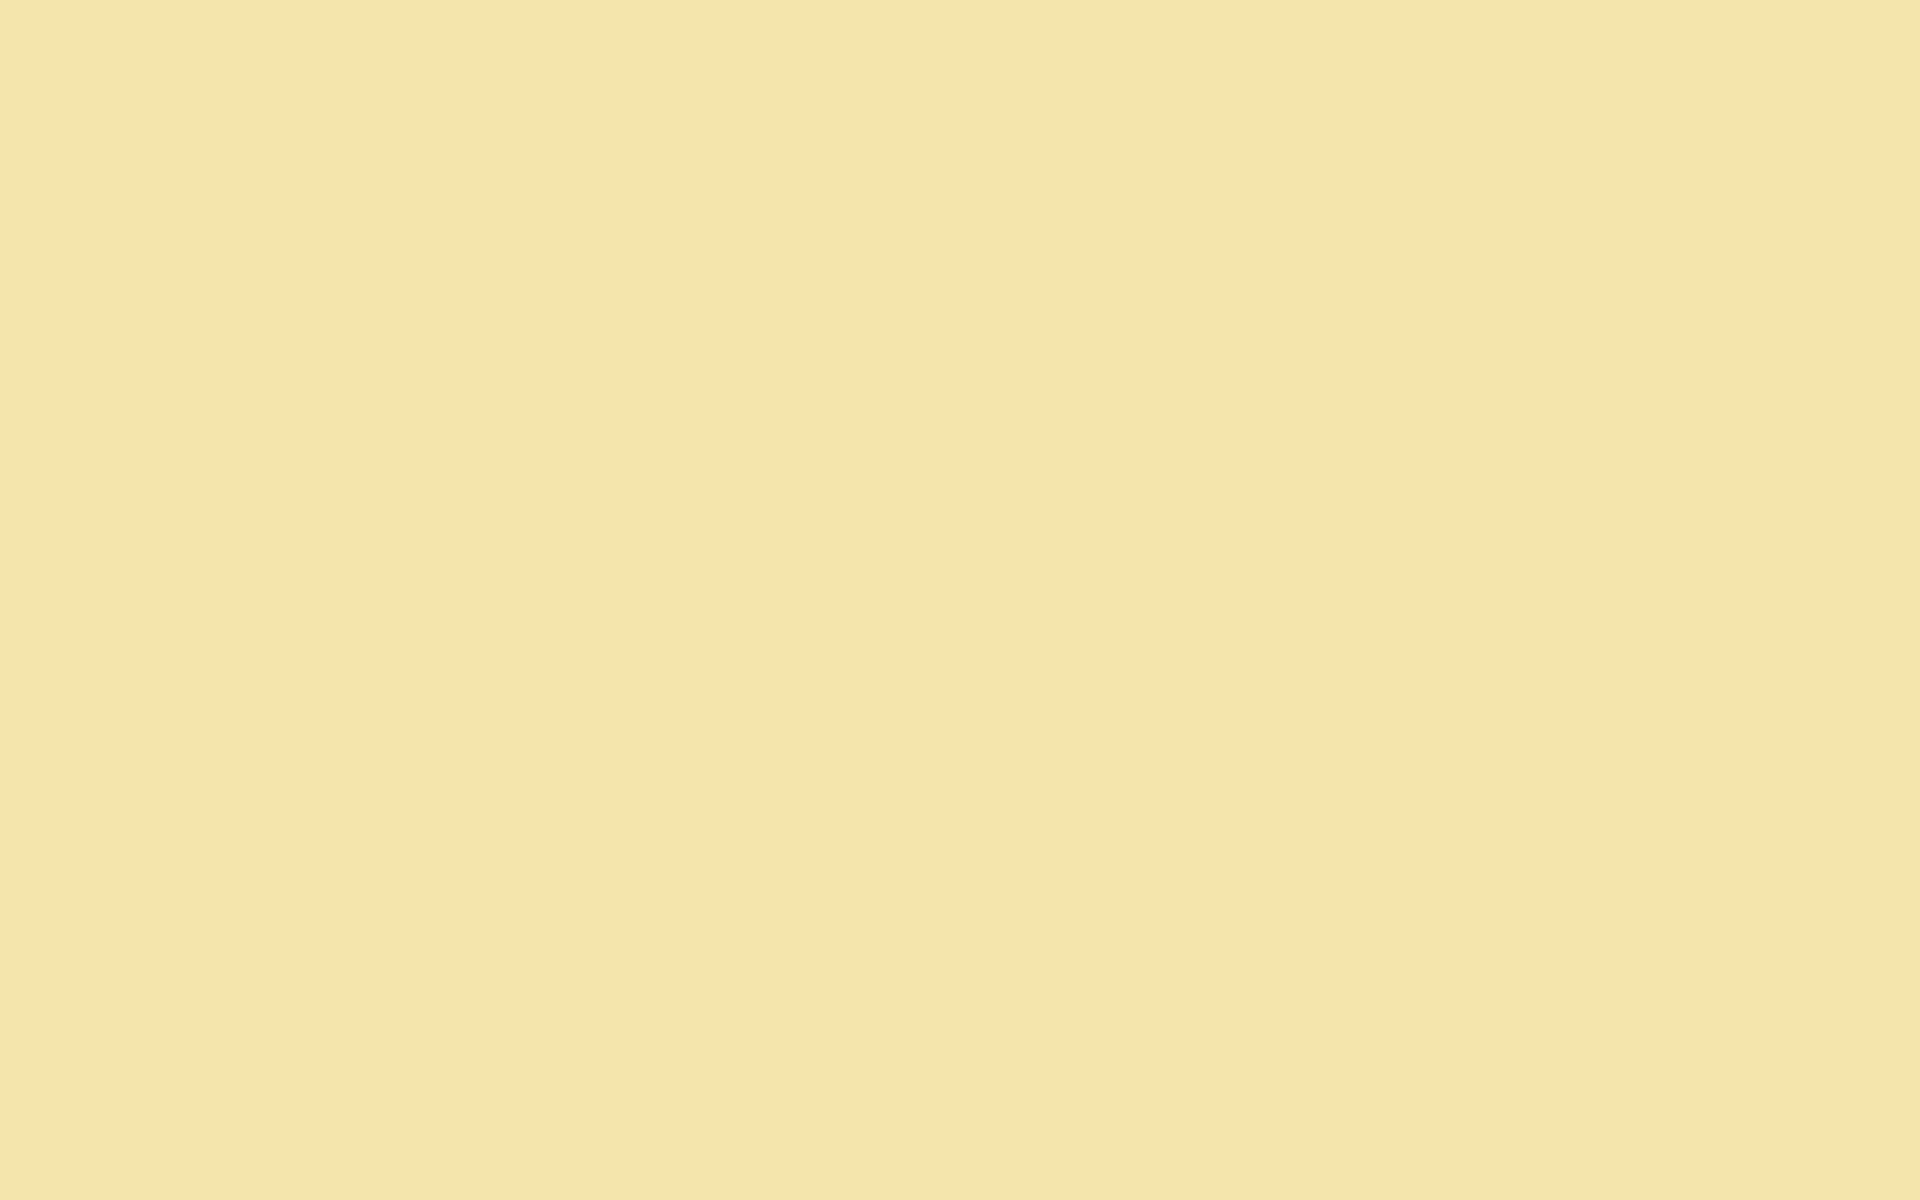 1920x1200 Medium Champagne Solid Color Background